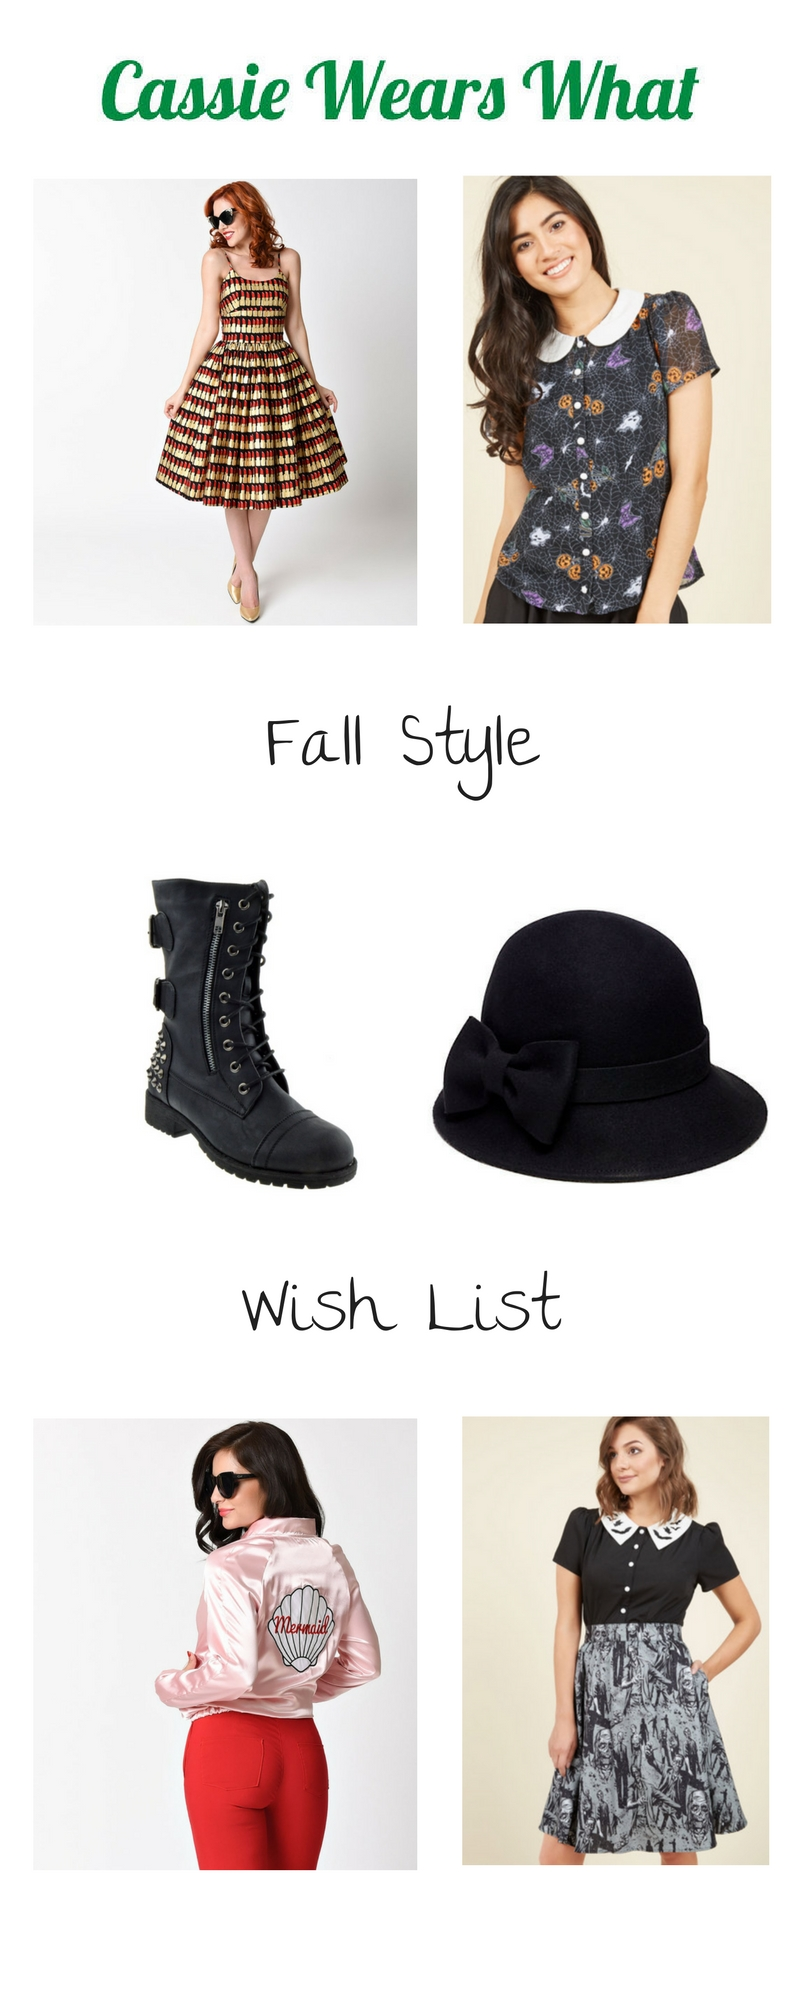 It's time for fall, the best season for fashion and style! Are you as excited as I am? Check out my Fall Style Wish List.